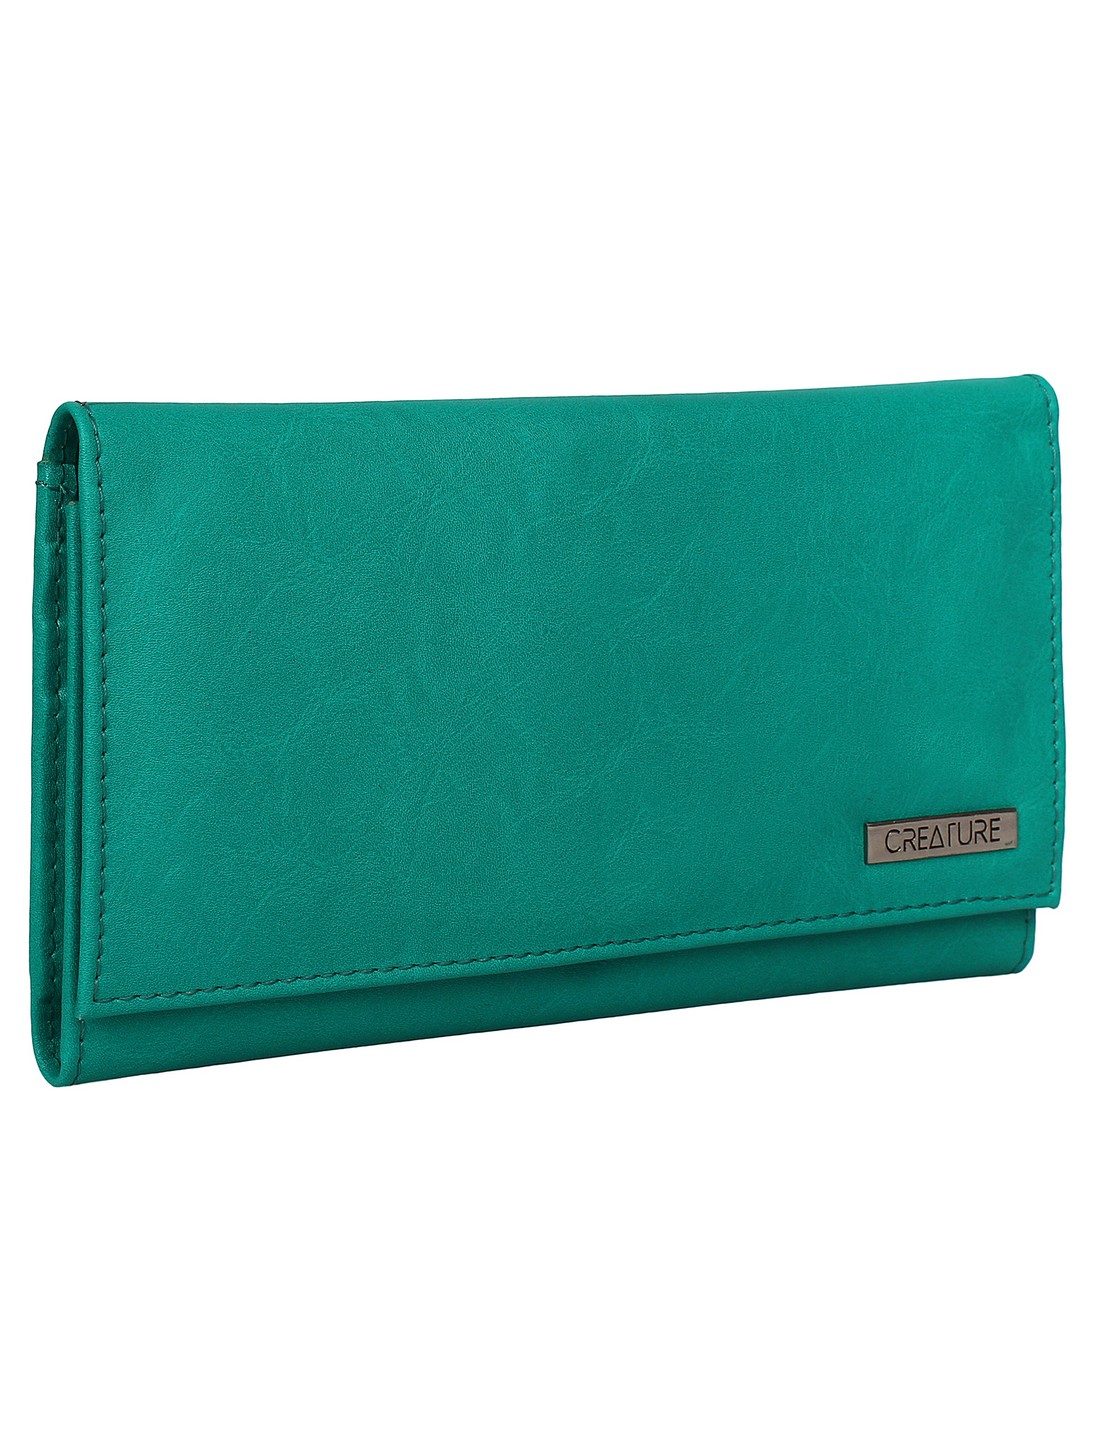 CREATURE   CREATURE Turquoise Blue Stylish PU Clutch for Women